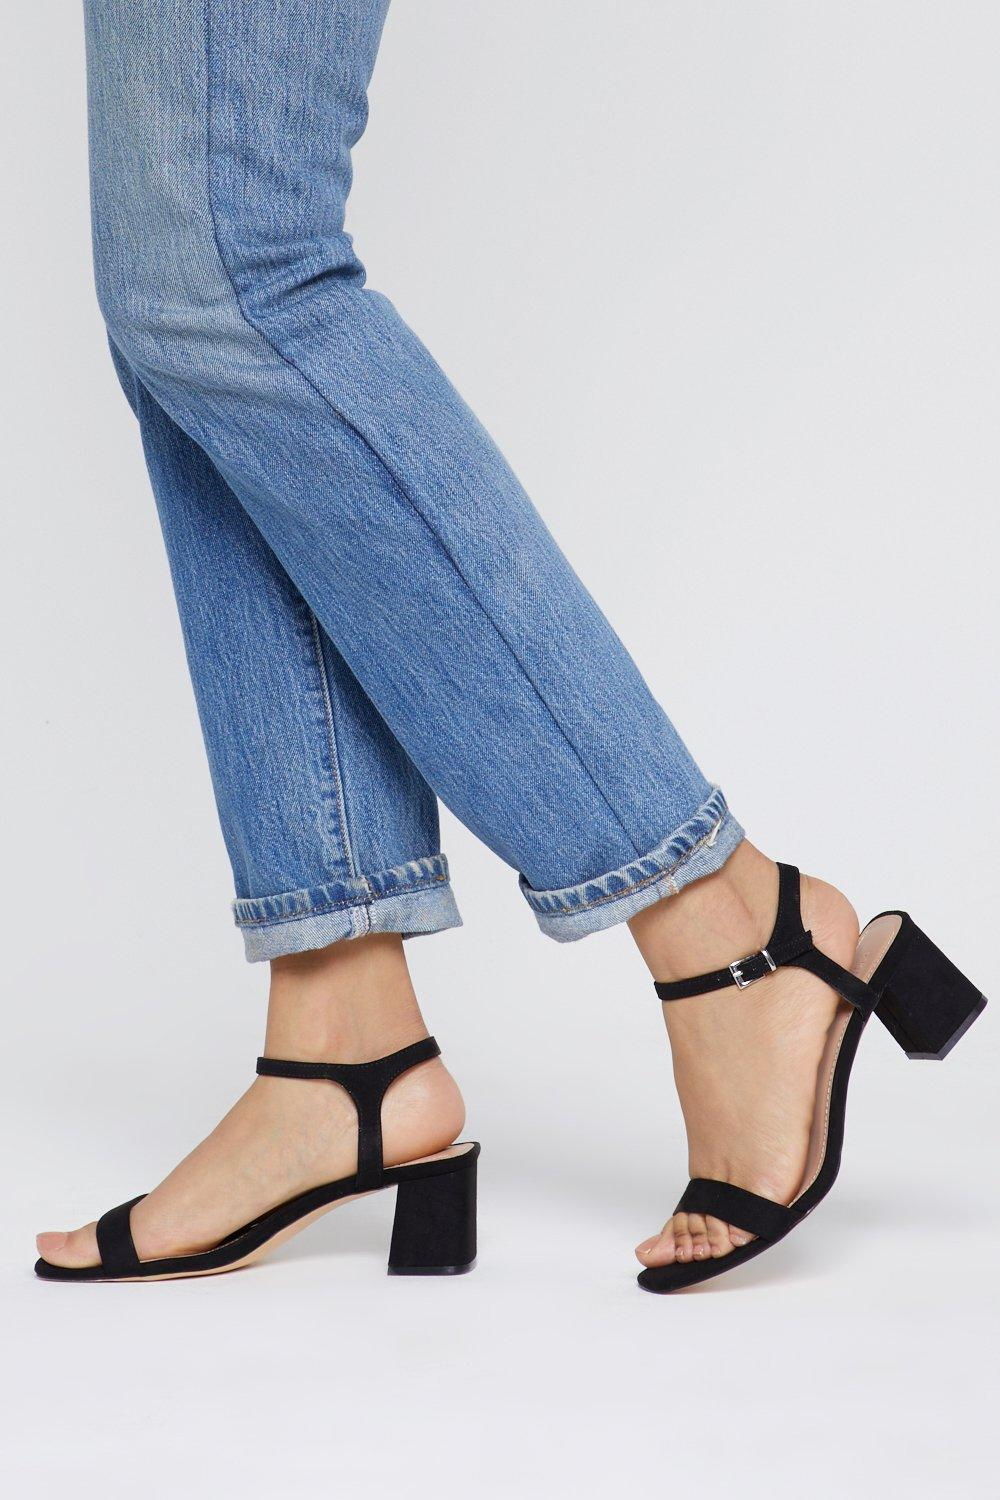 be3679d90 A Low It Flare Block Heel Sandals | Shop Clothes at Nasty Gal!